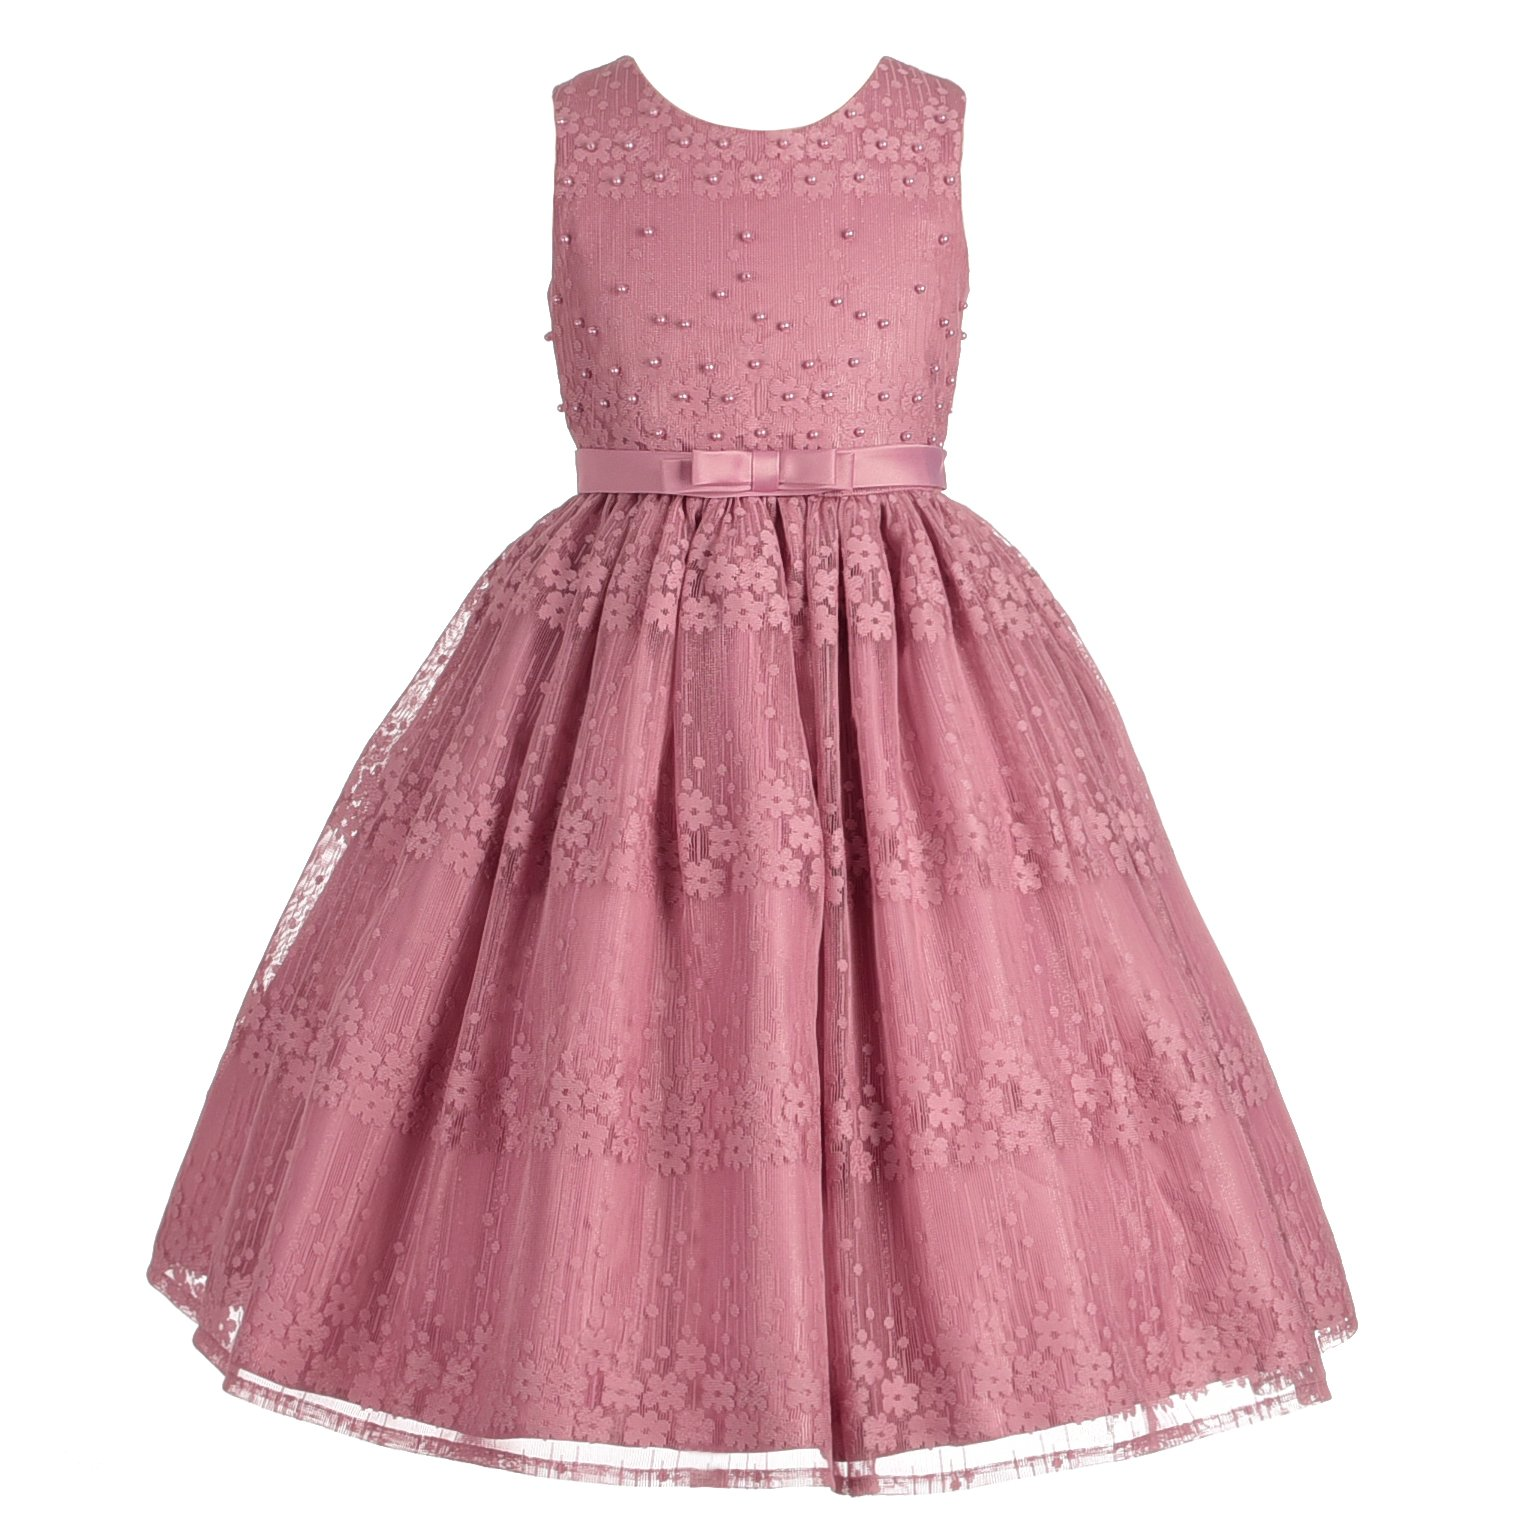 Dressy Daisy Girls' Floral Beaded Pageant Dresses Wedding Flower Girl Dress Lace Size 8 Pink